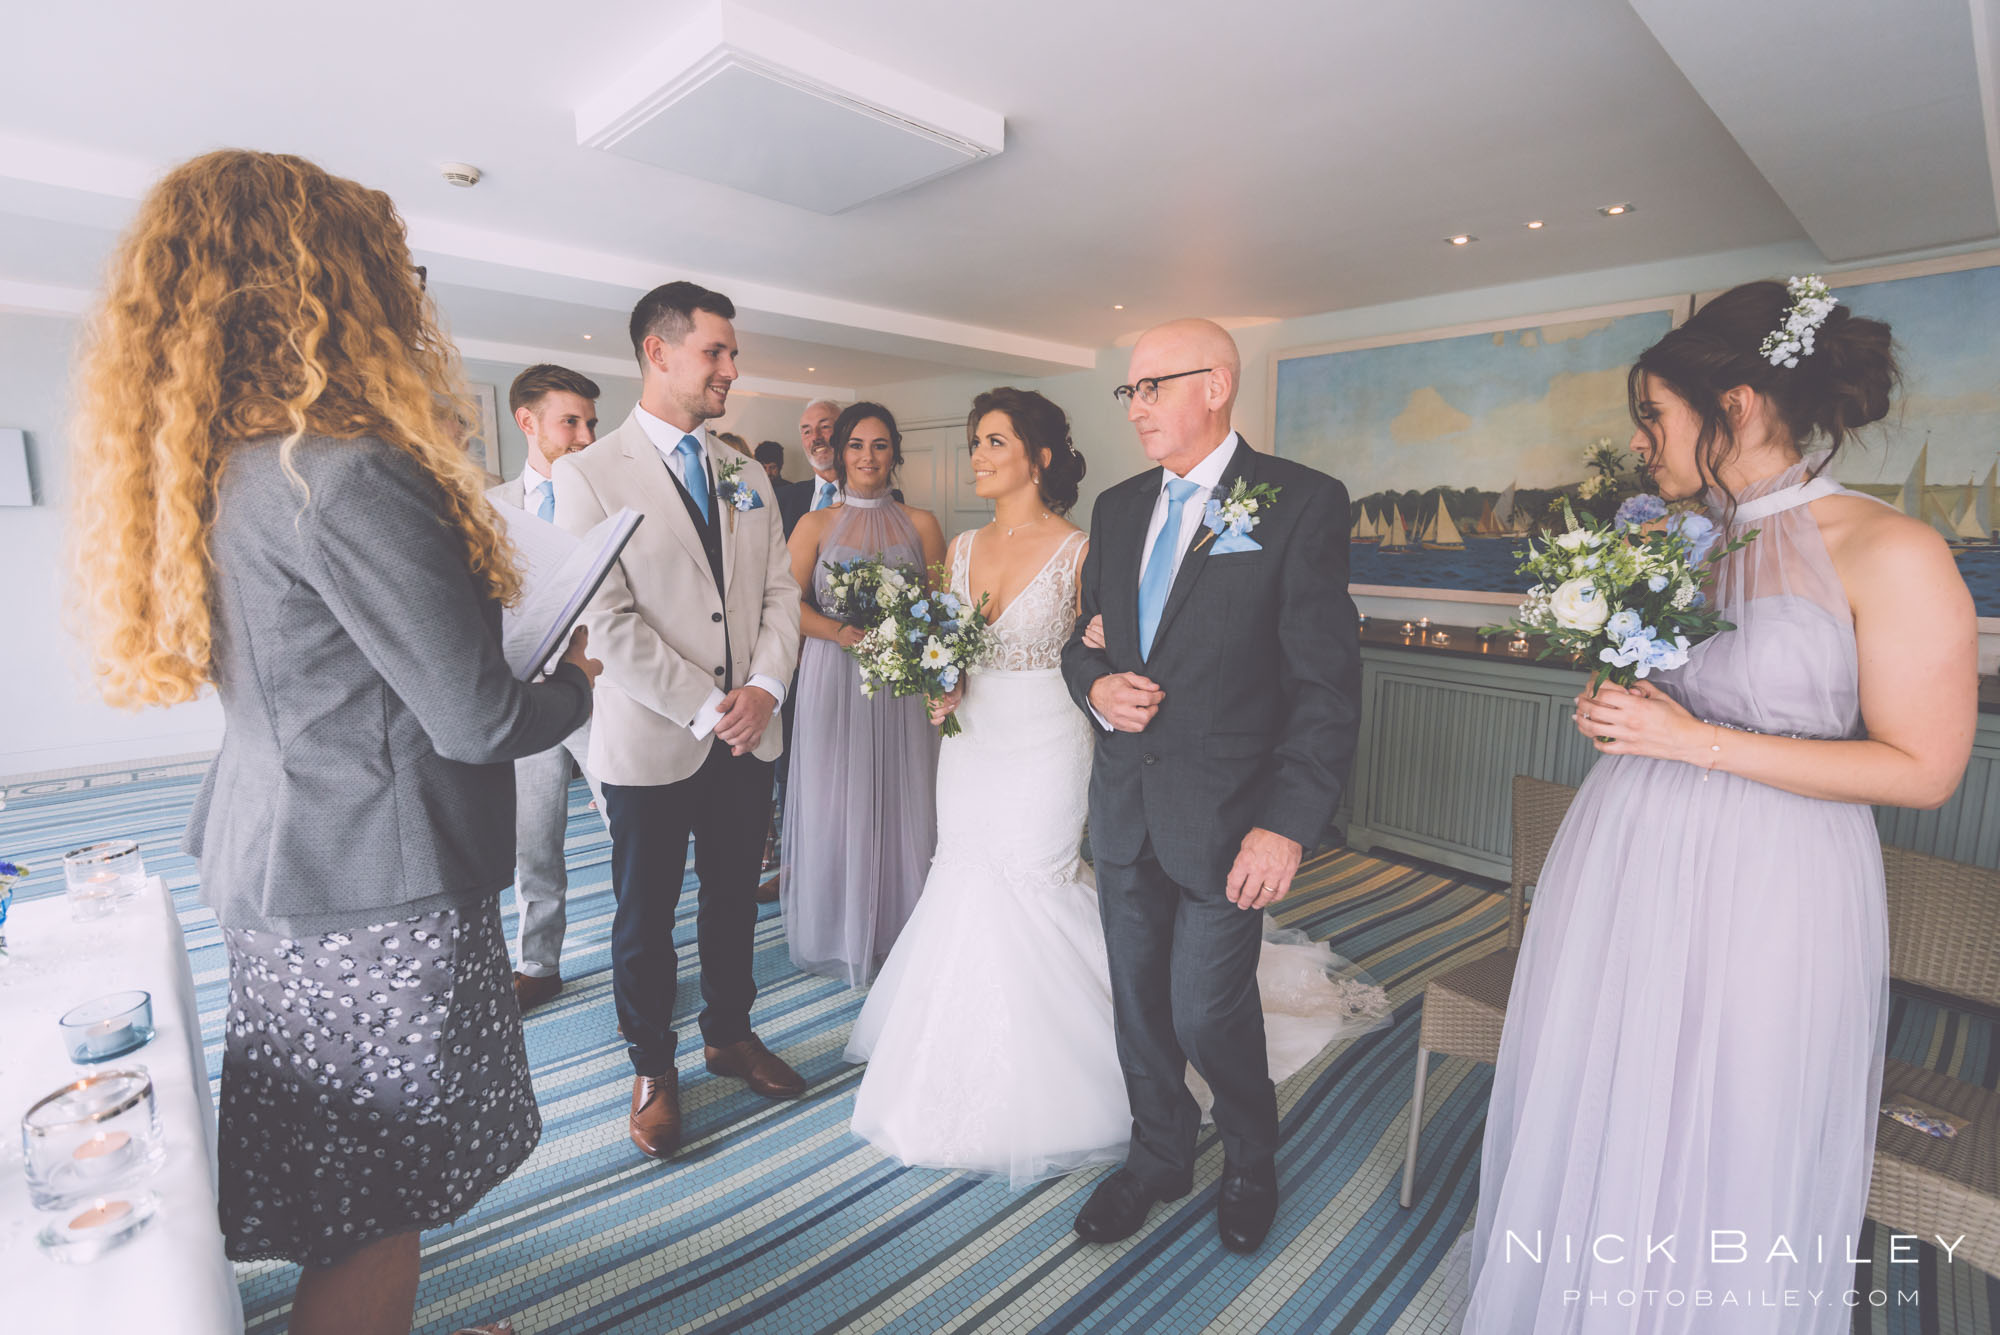 tresanton-hotel-weddings-25.jpg